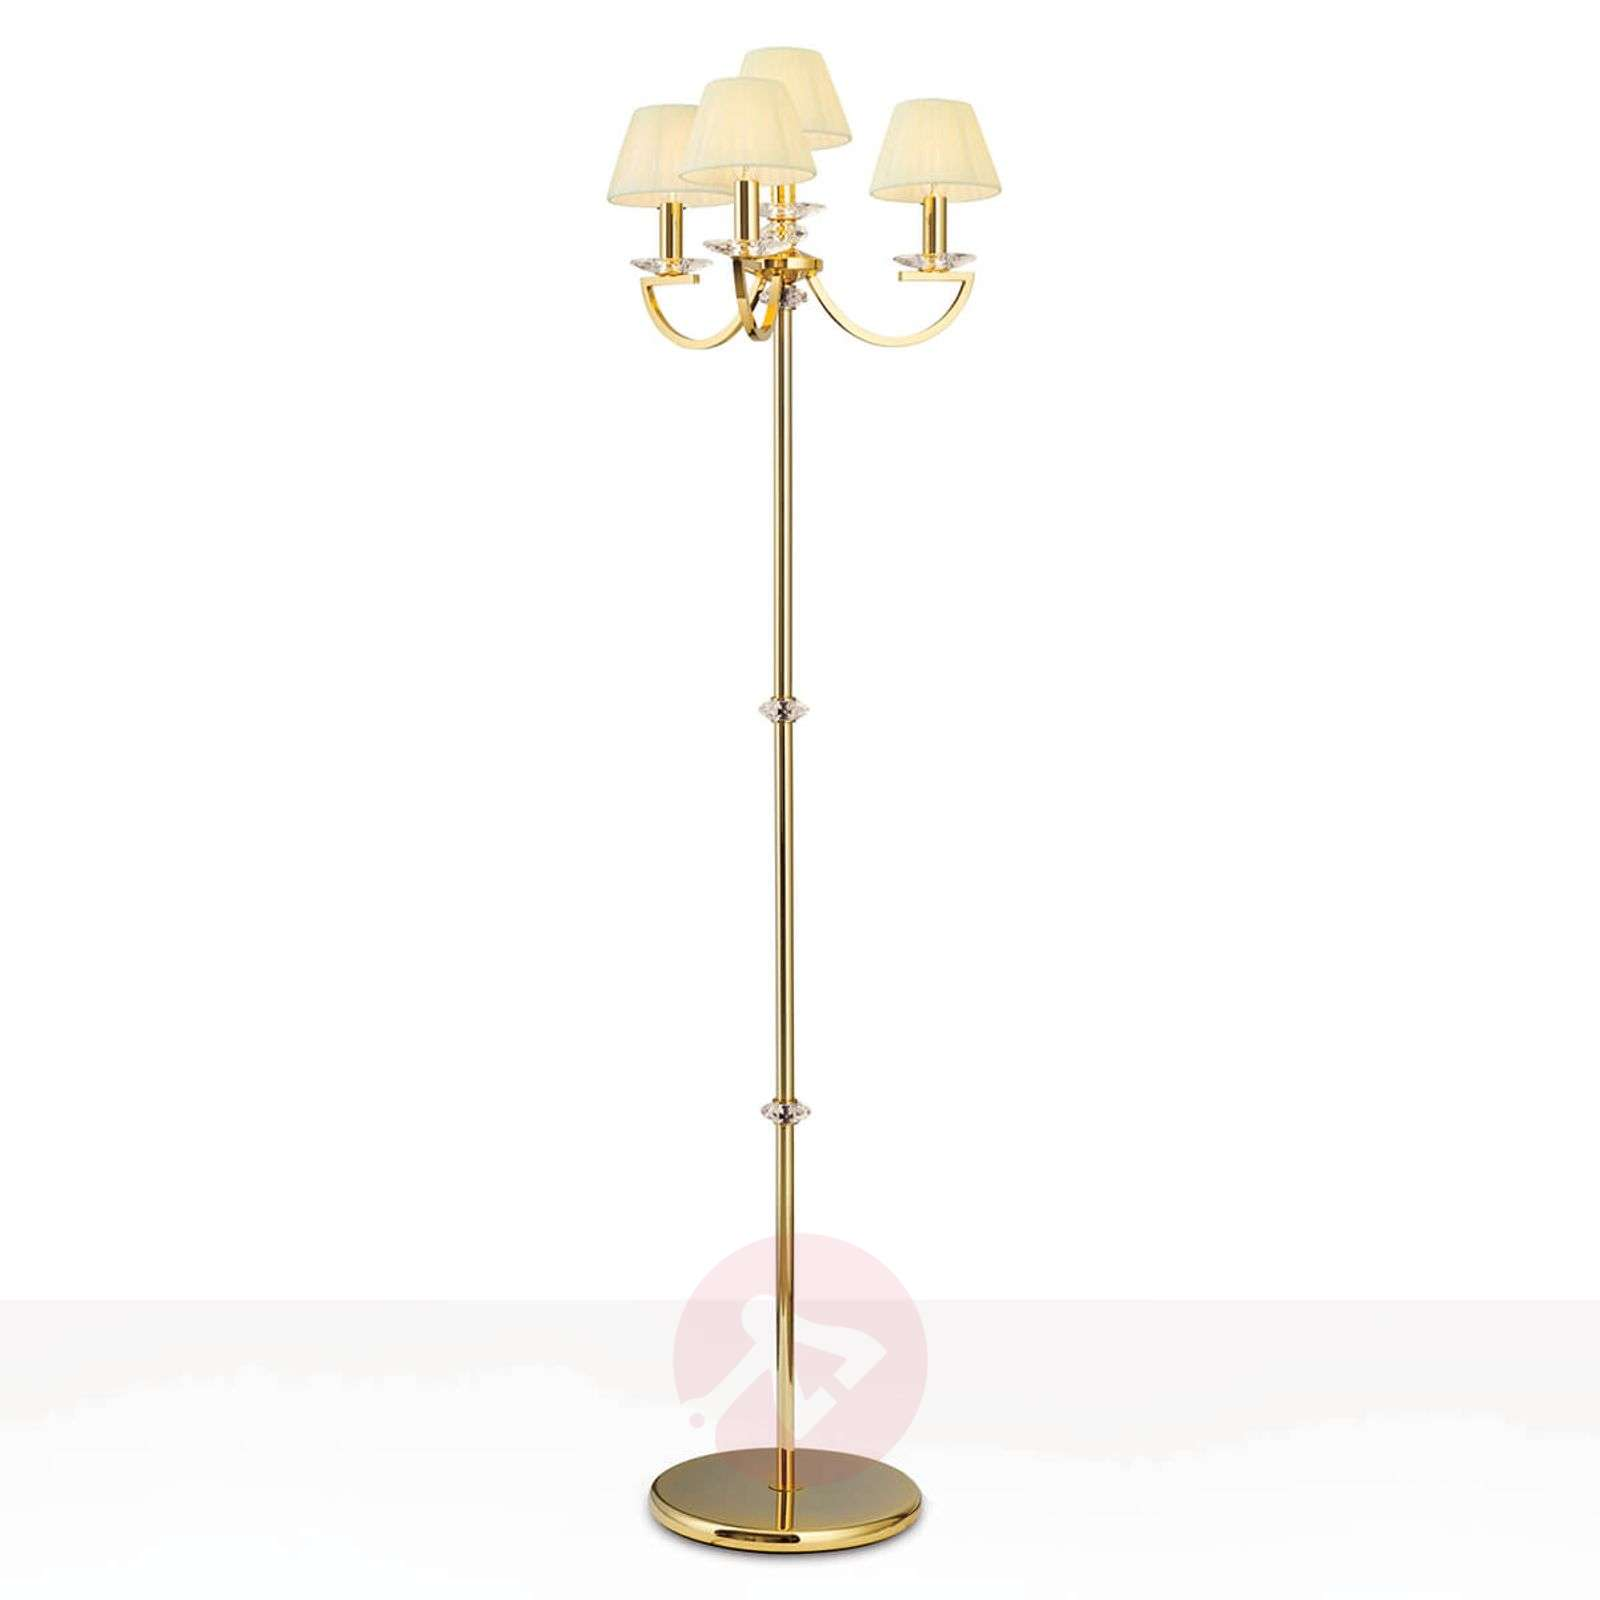 Crystal floor lamp avala 24 carat gold plated 7255244 01